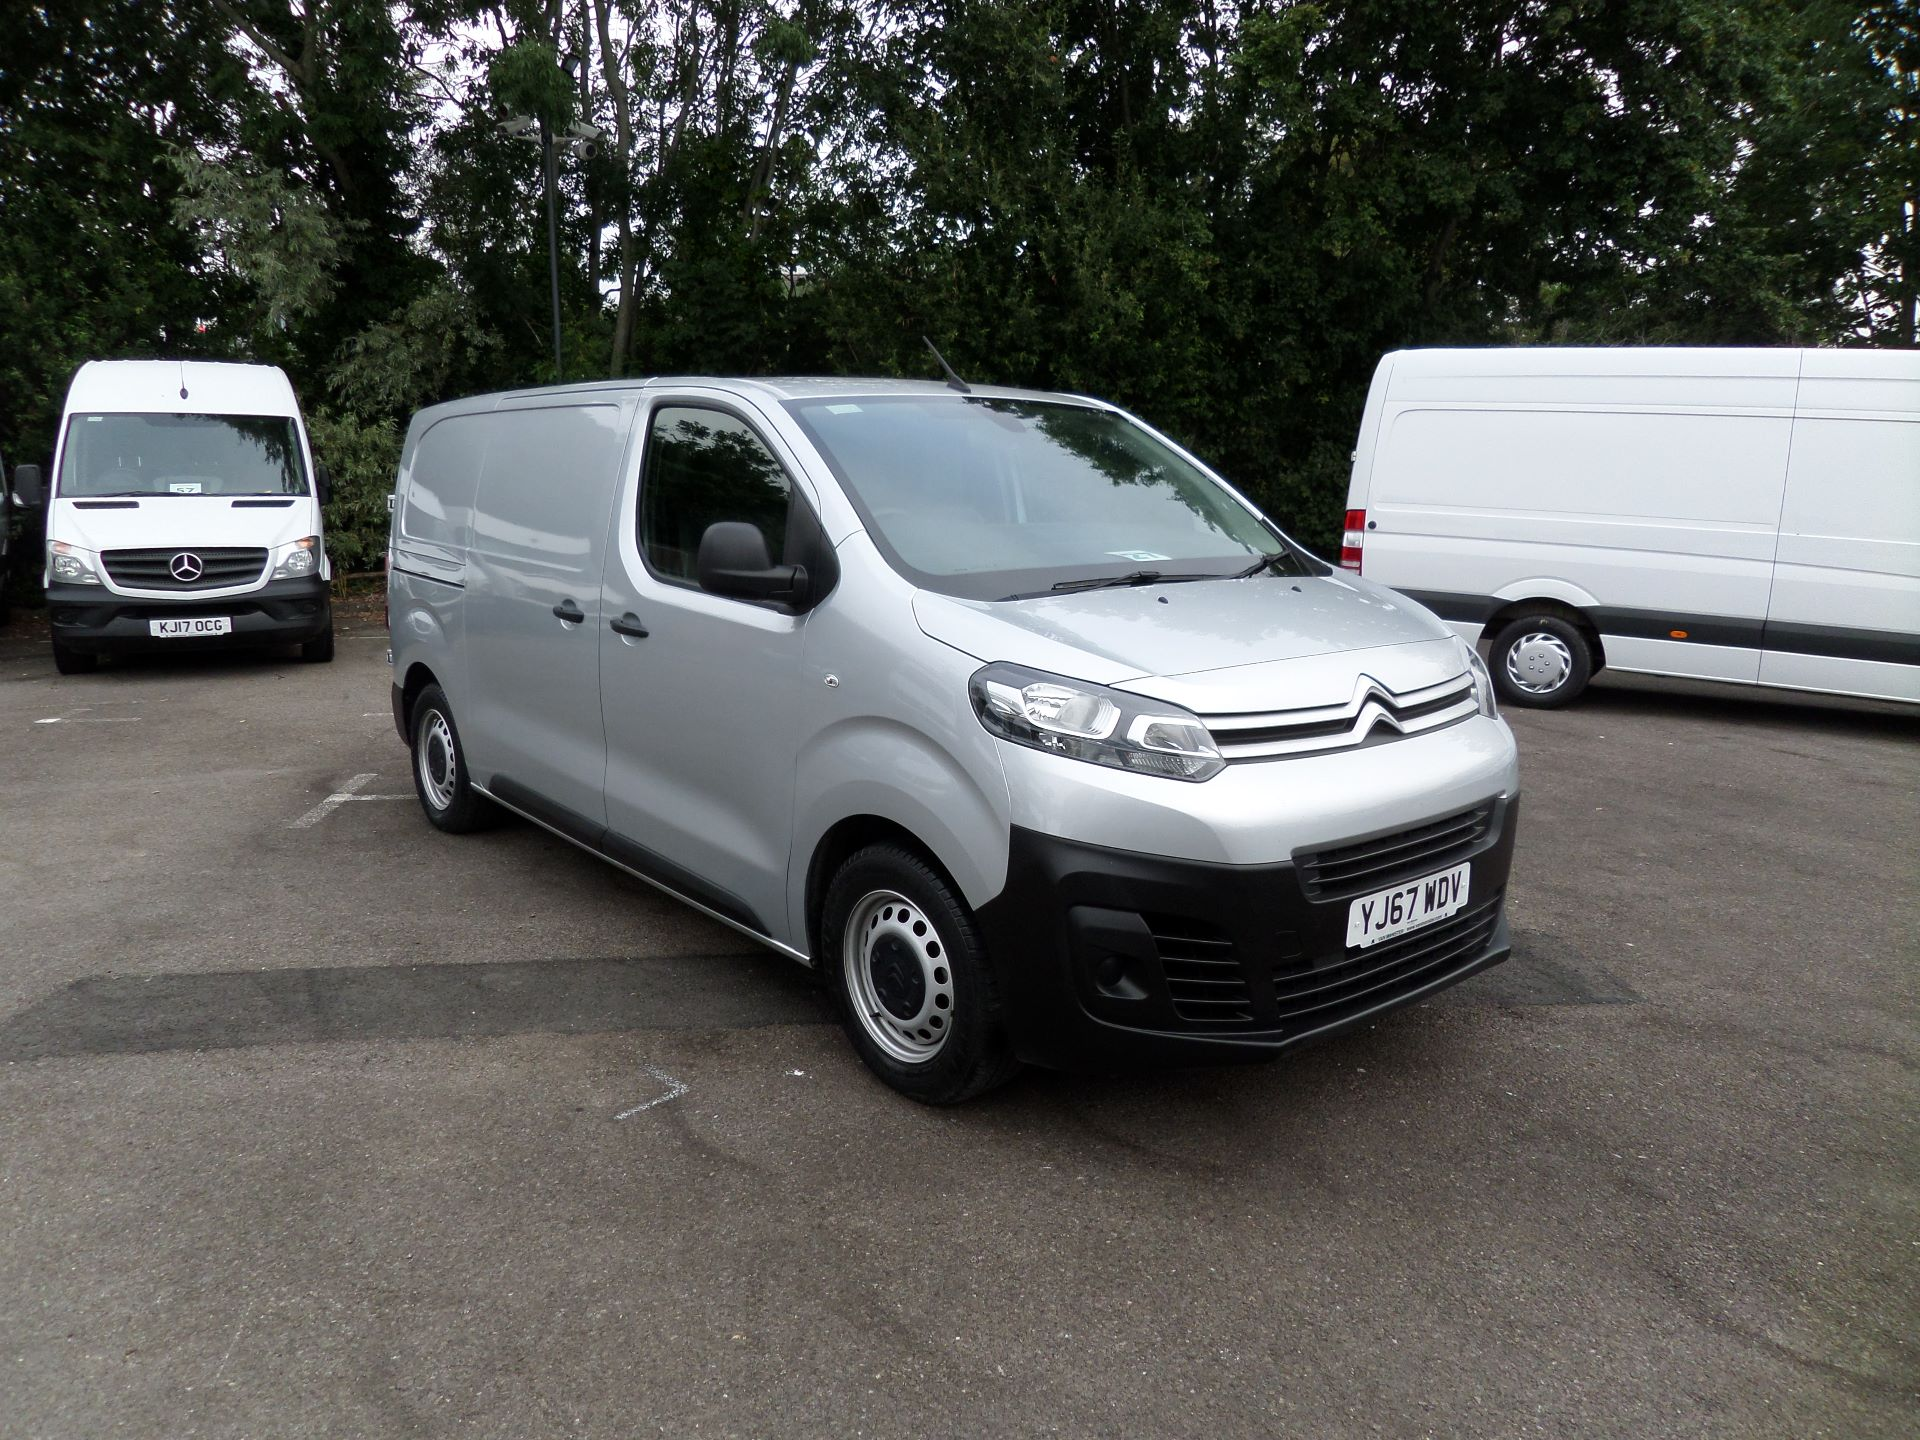 2017 Citroen Dispatch 1000 1.6 Bluehdi 95 Van Enterprise Euro 6 (YJ67WDV)